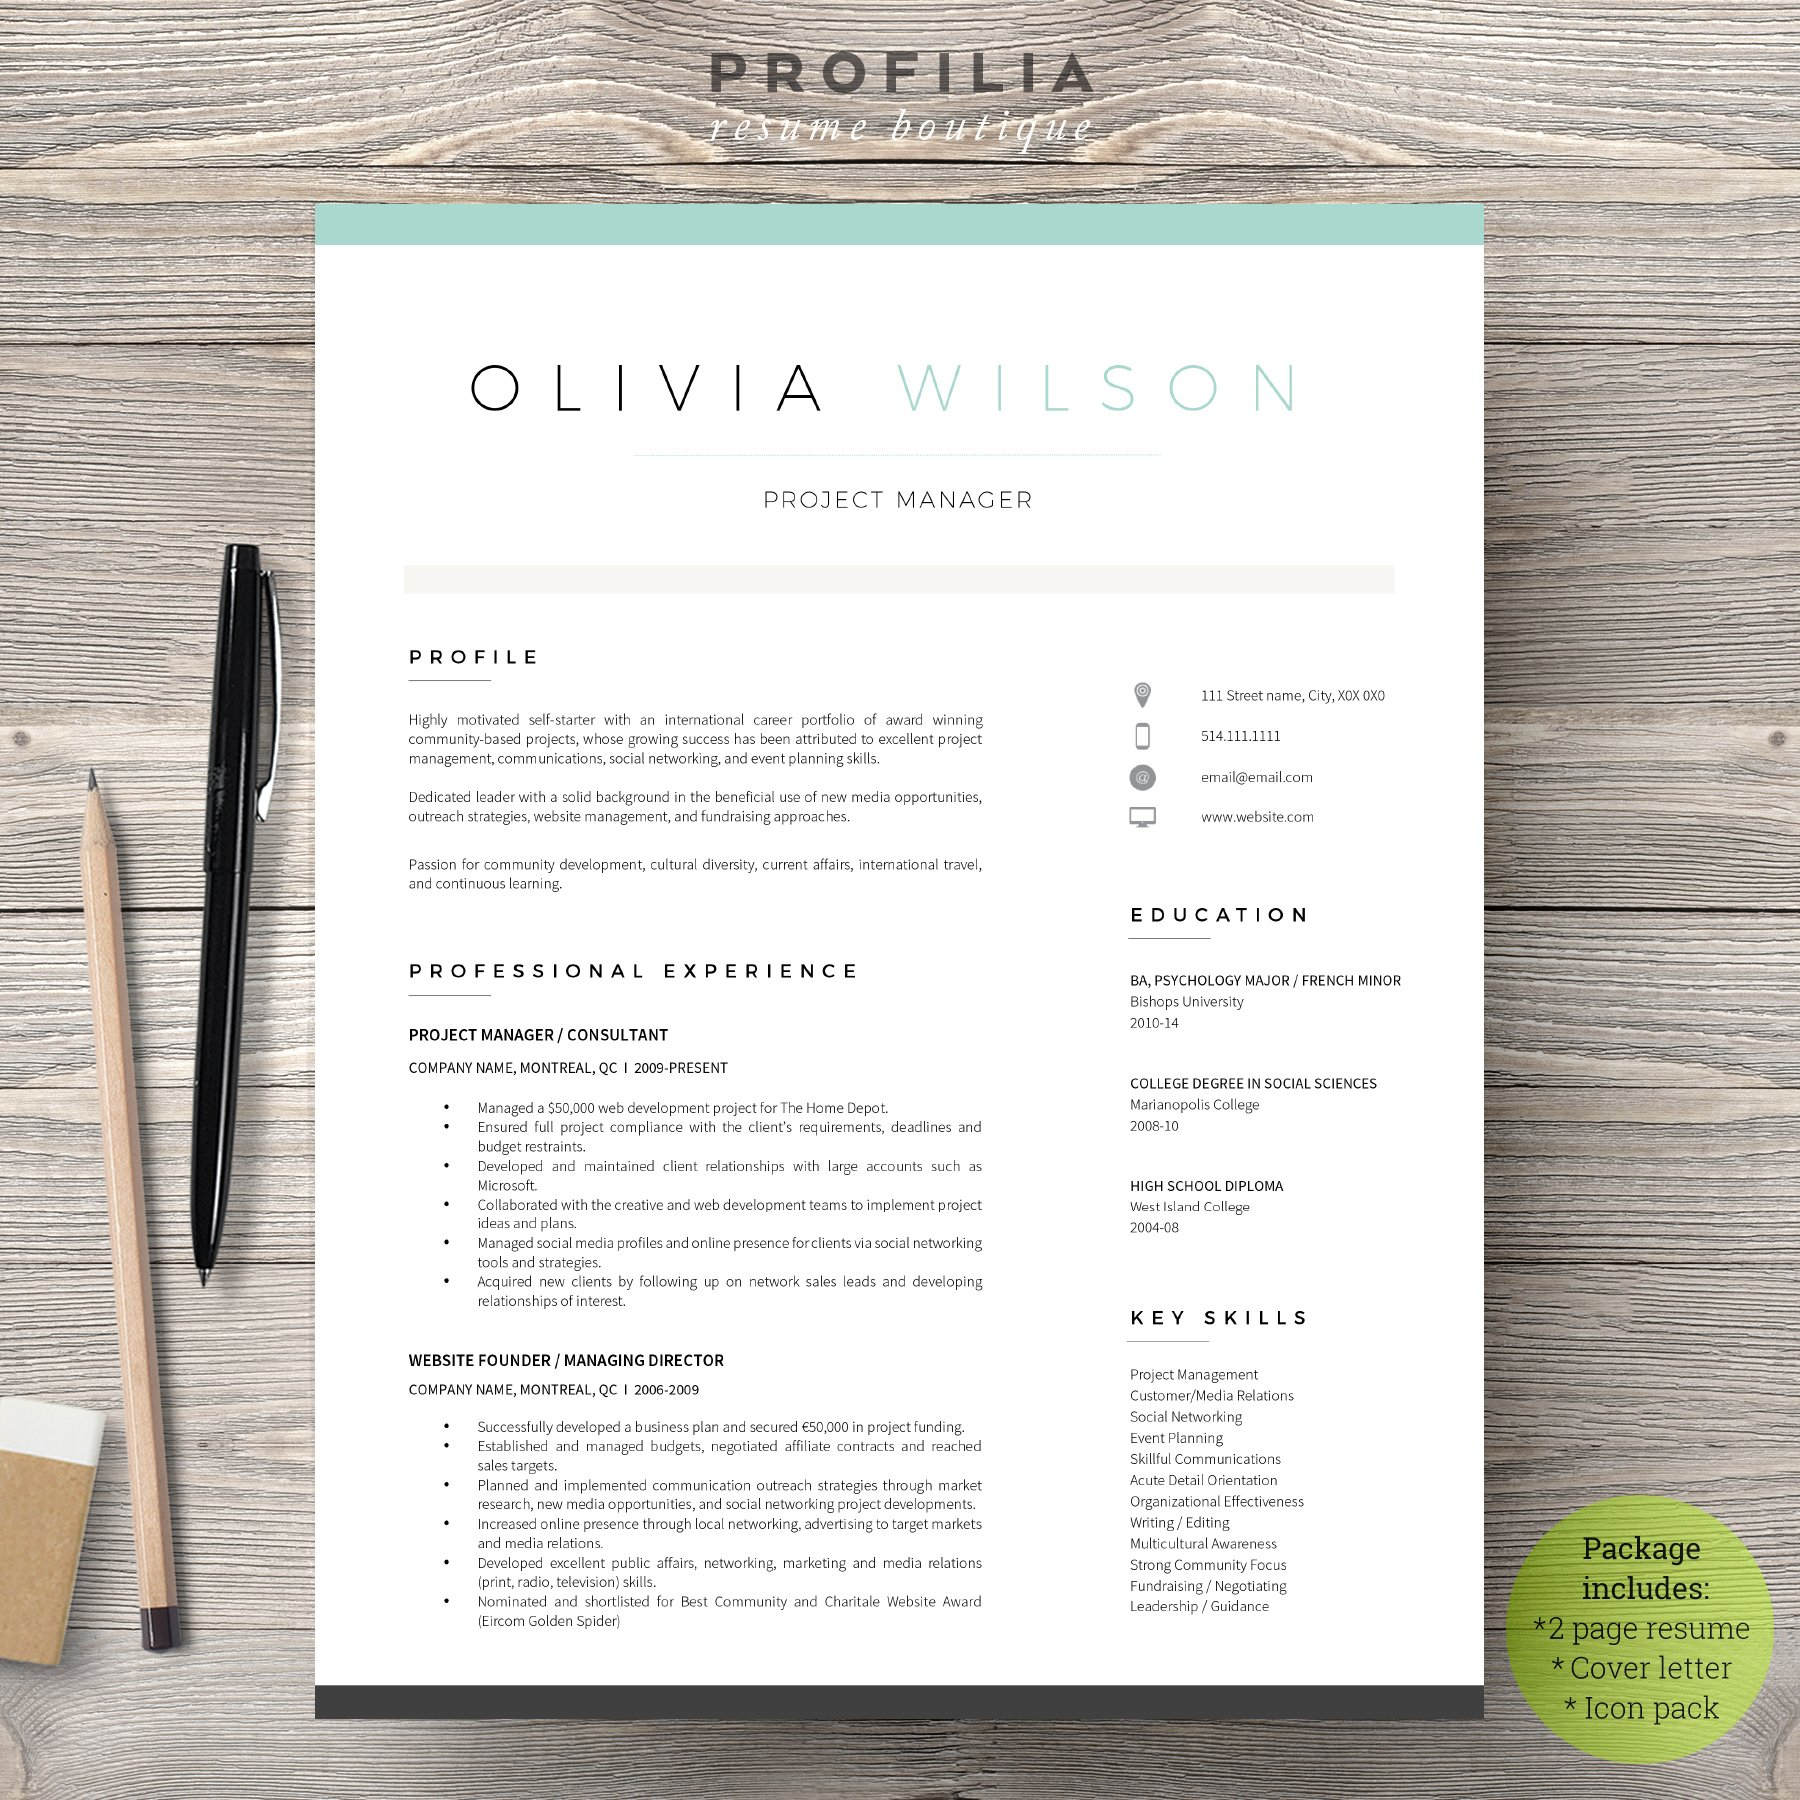 Word resume cover letter template resume templates creative market altavistaventures Choice Image